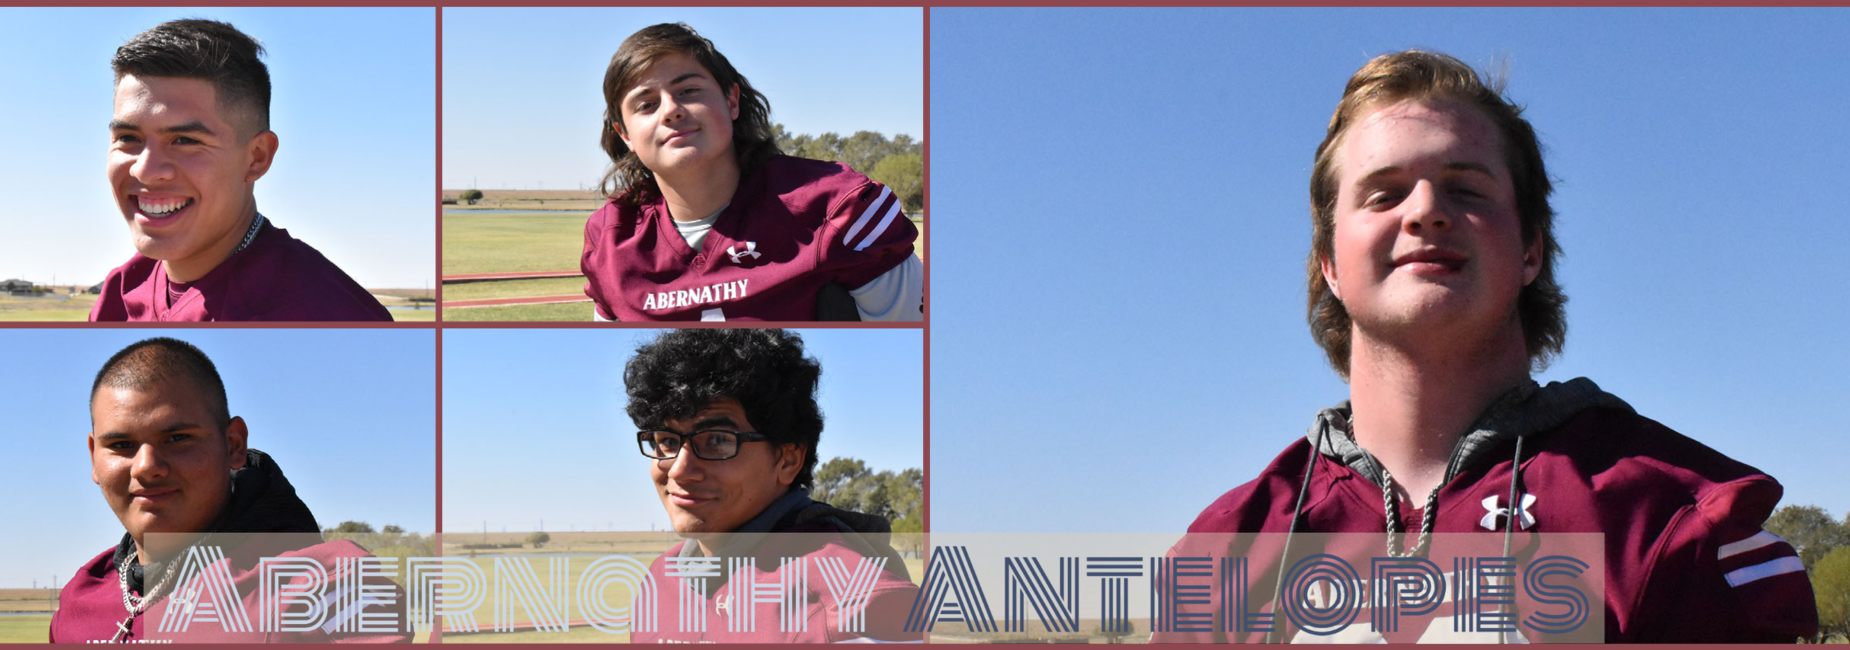 Collage of several football players posing for individual photos